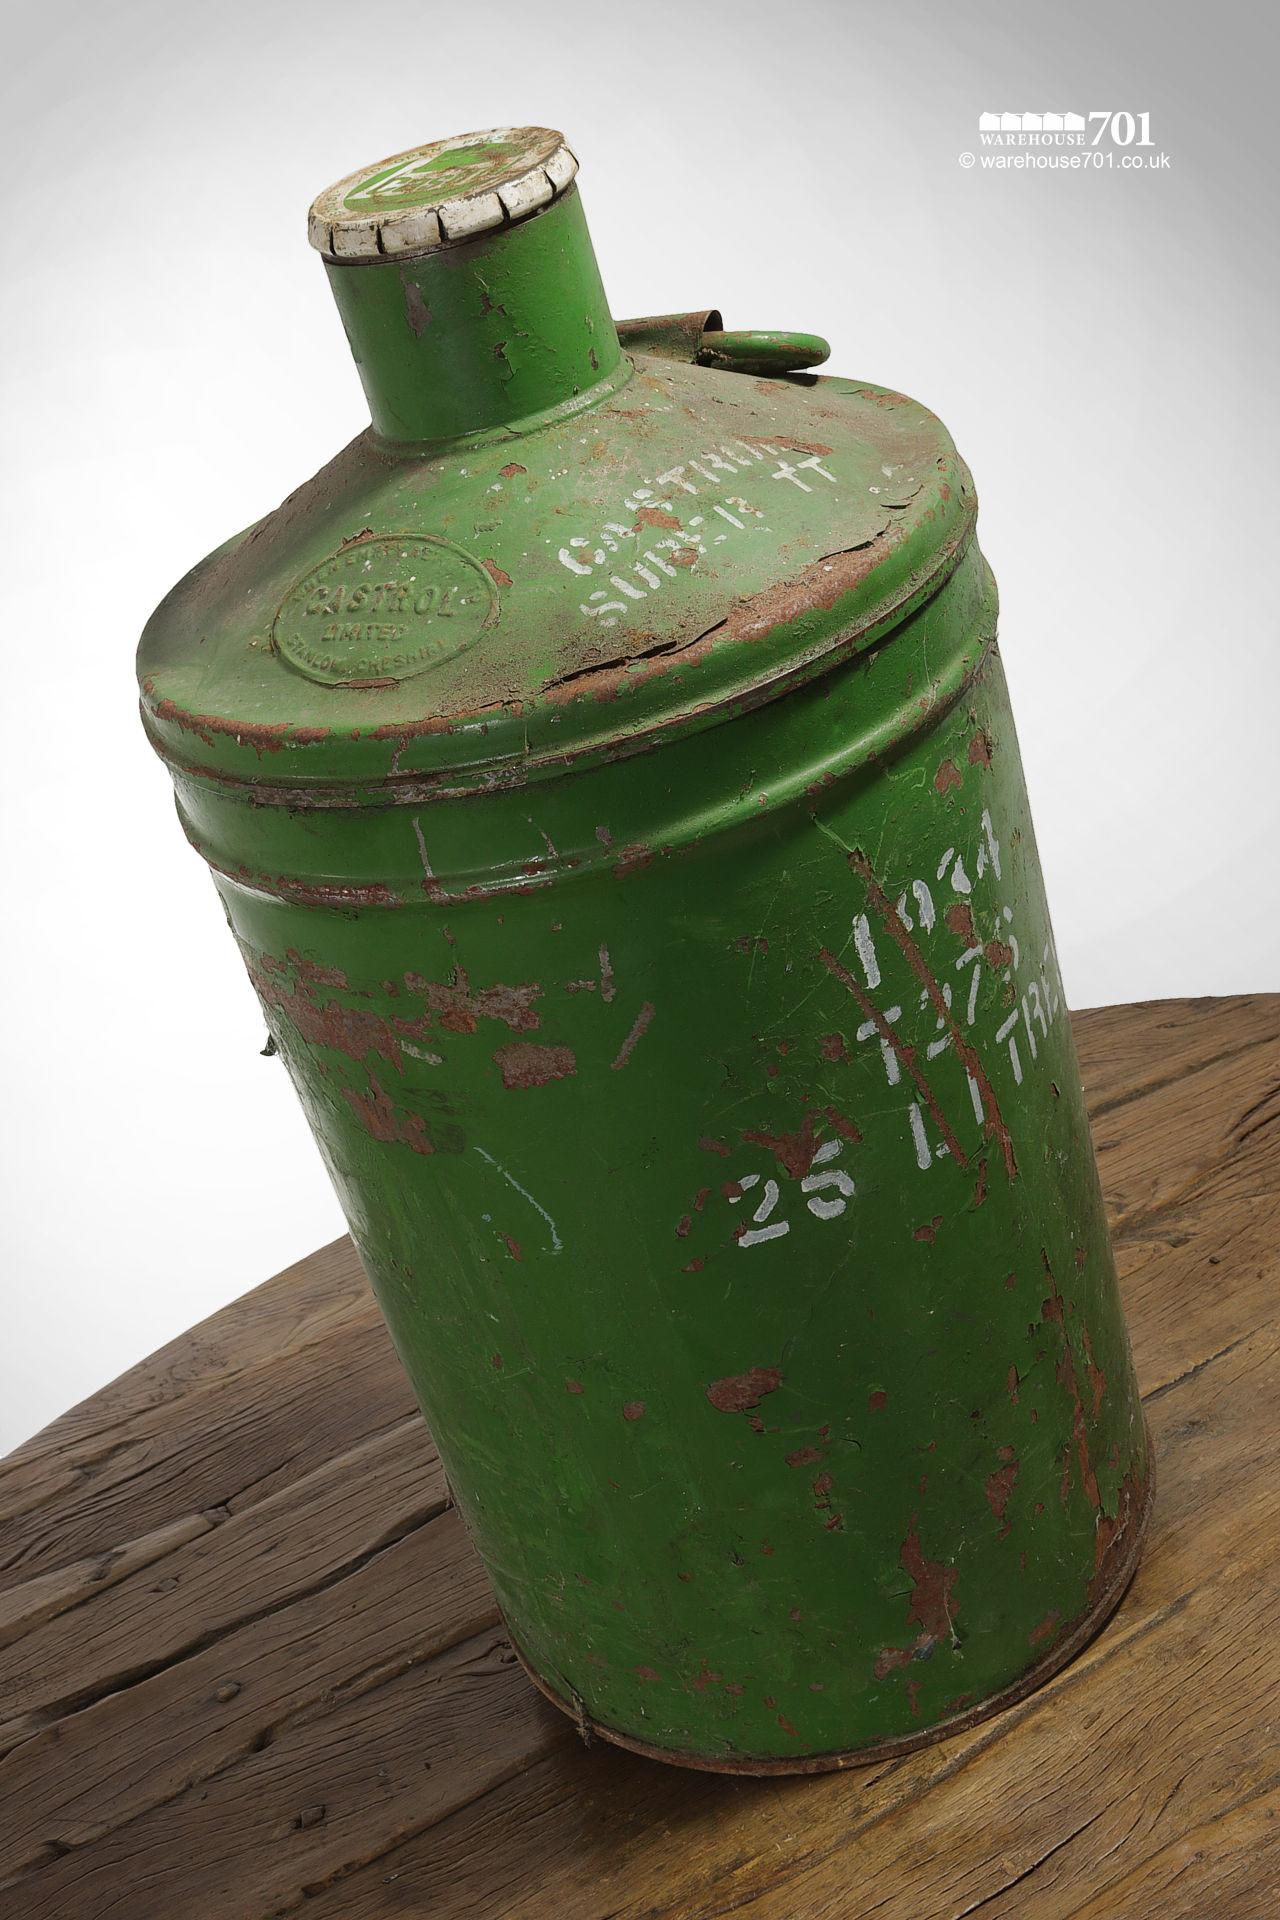 Assorted Salvaged Jerry Cans and Fuel and Oil Cans #4